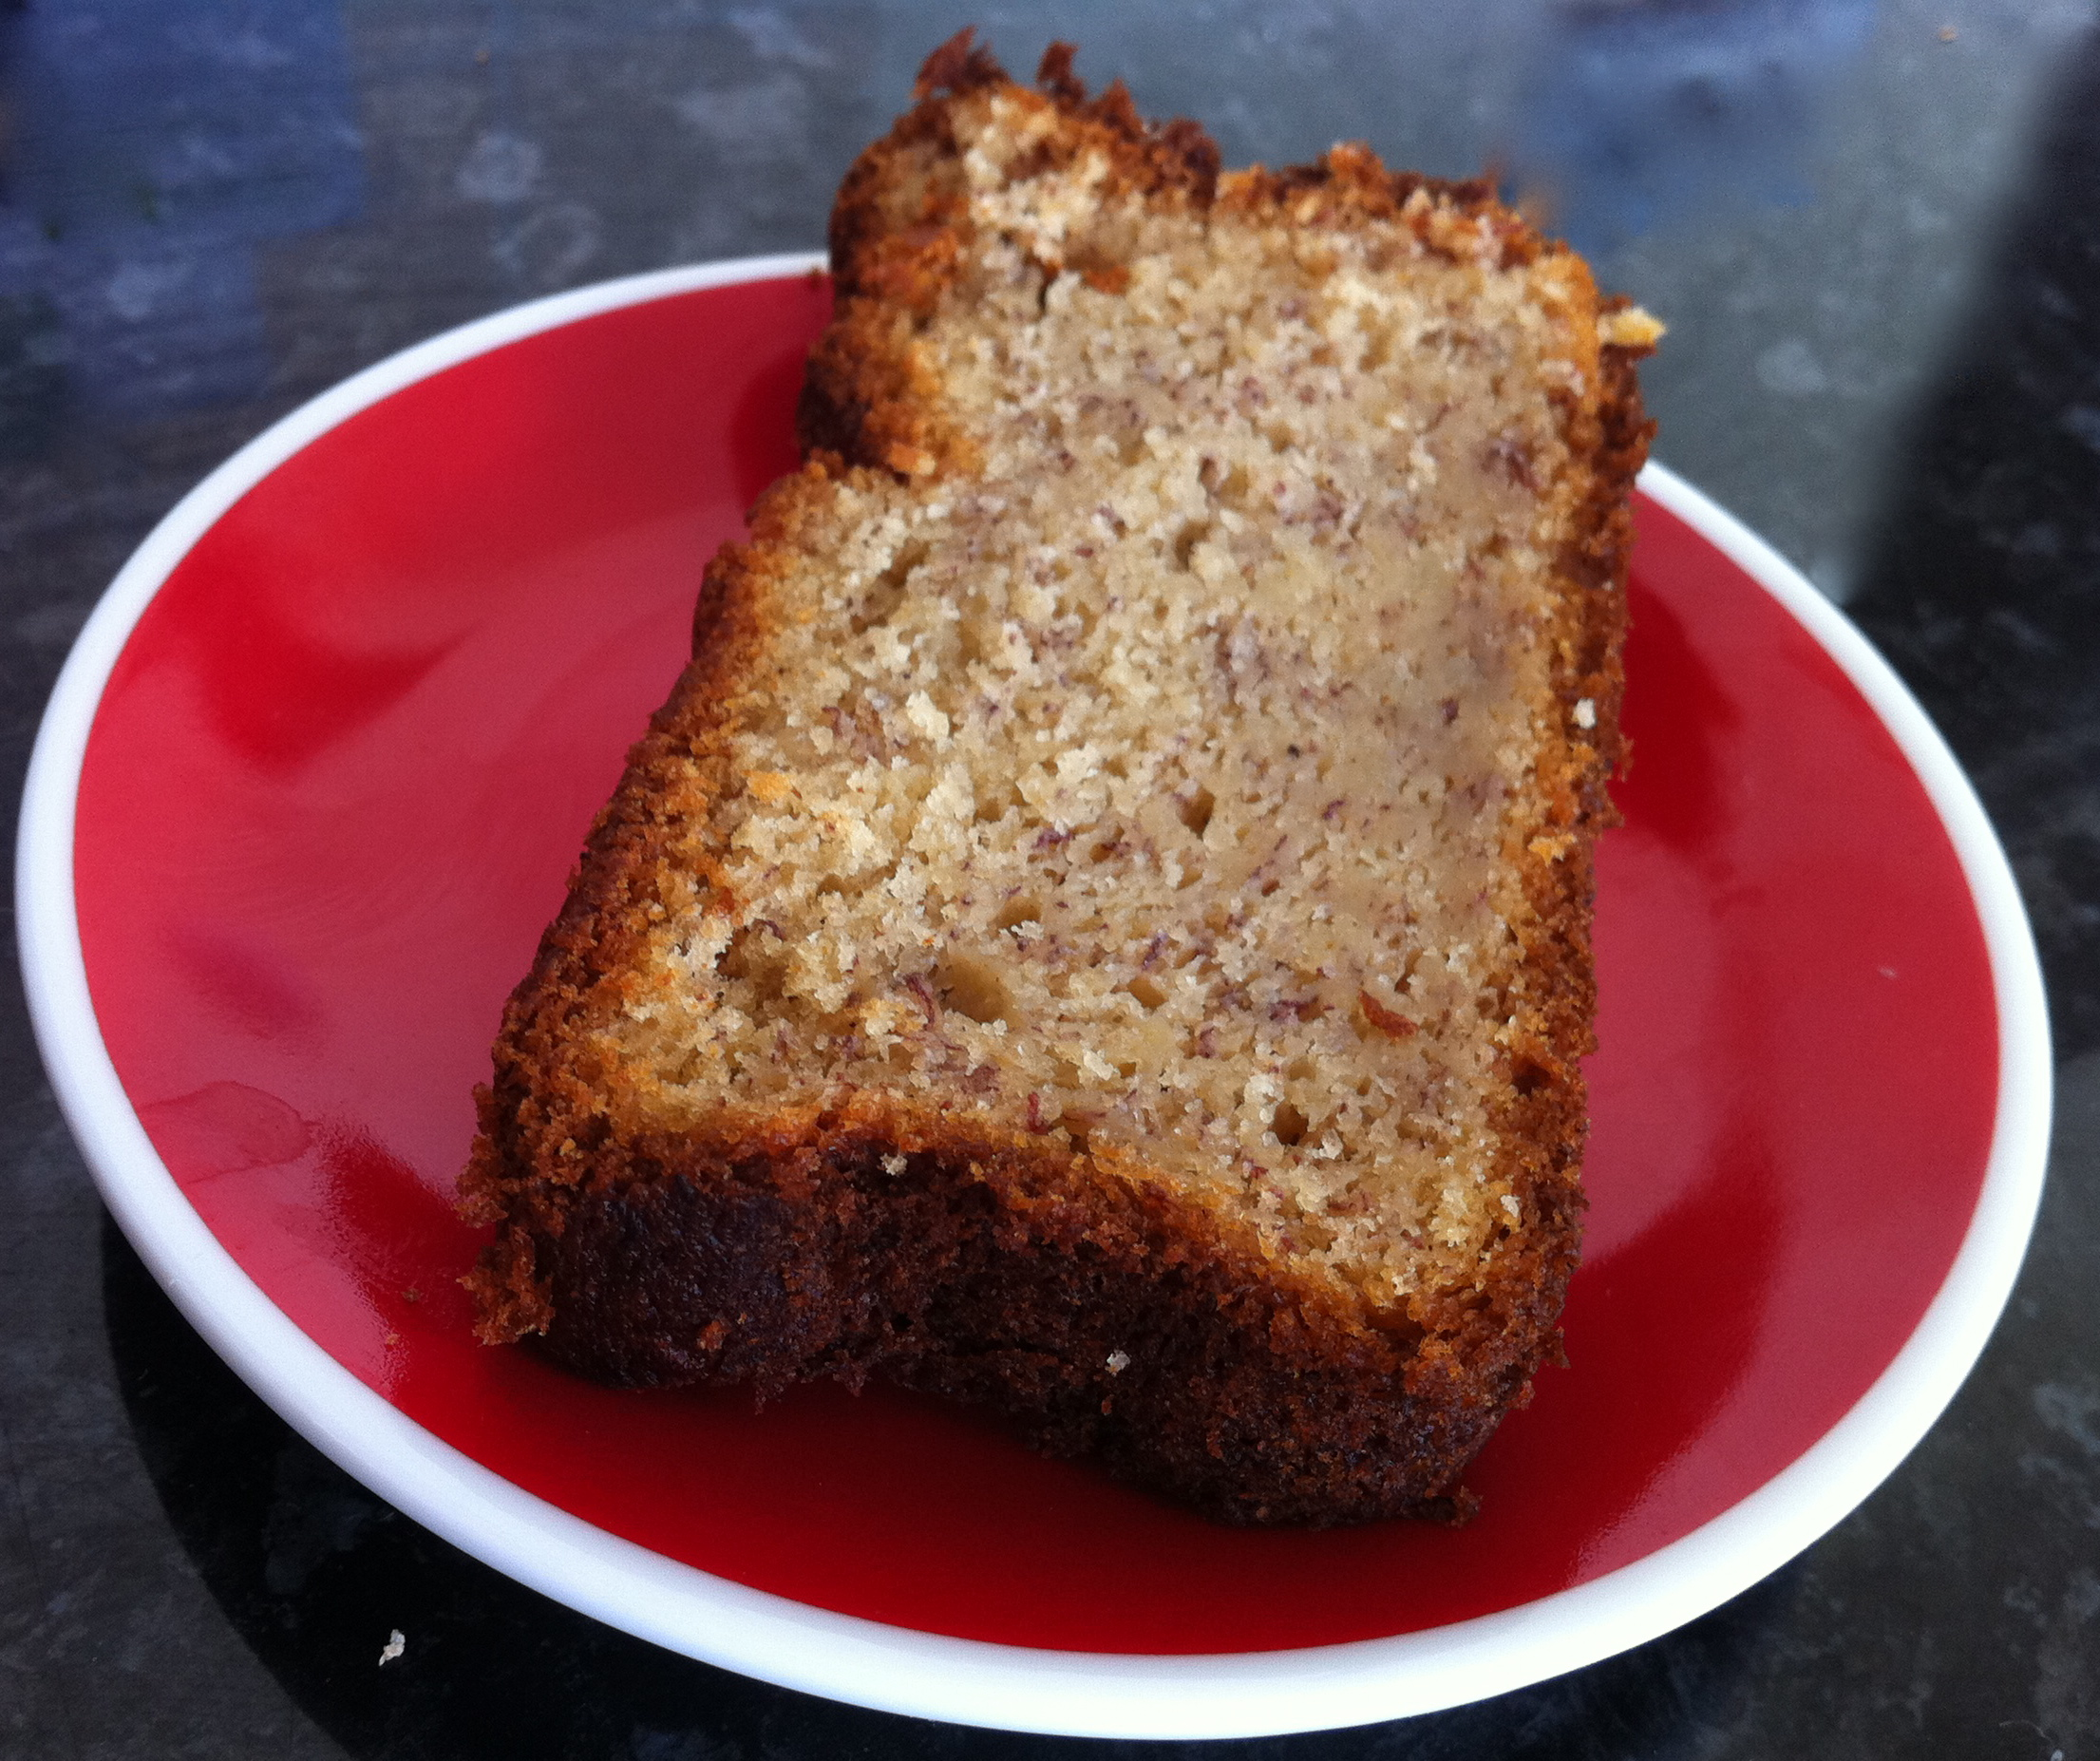 Authentic branding or baking banana bread